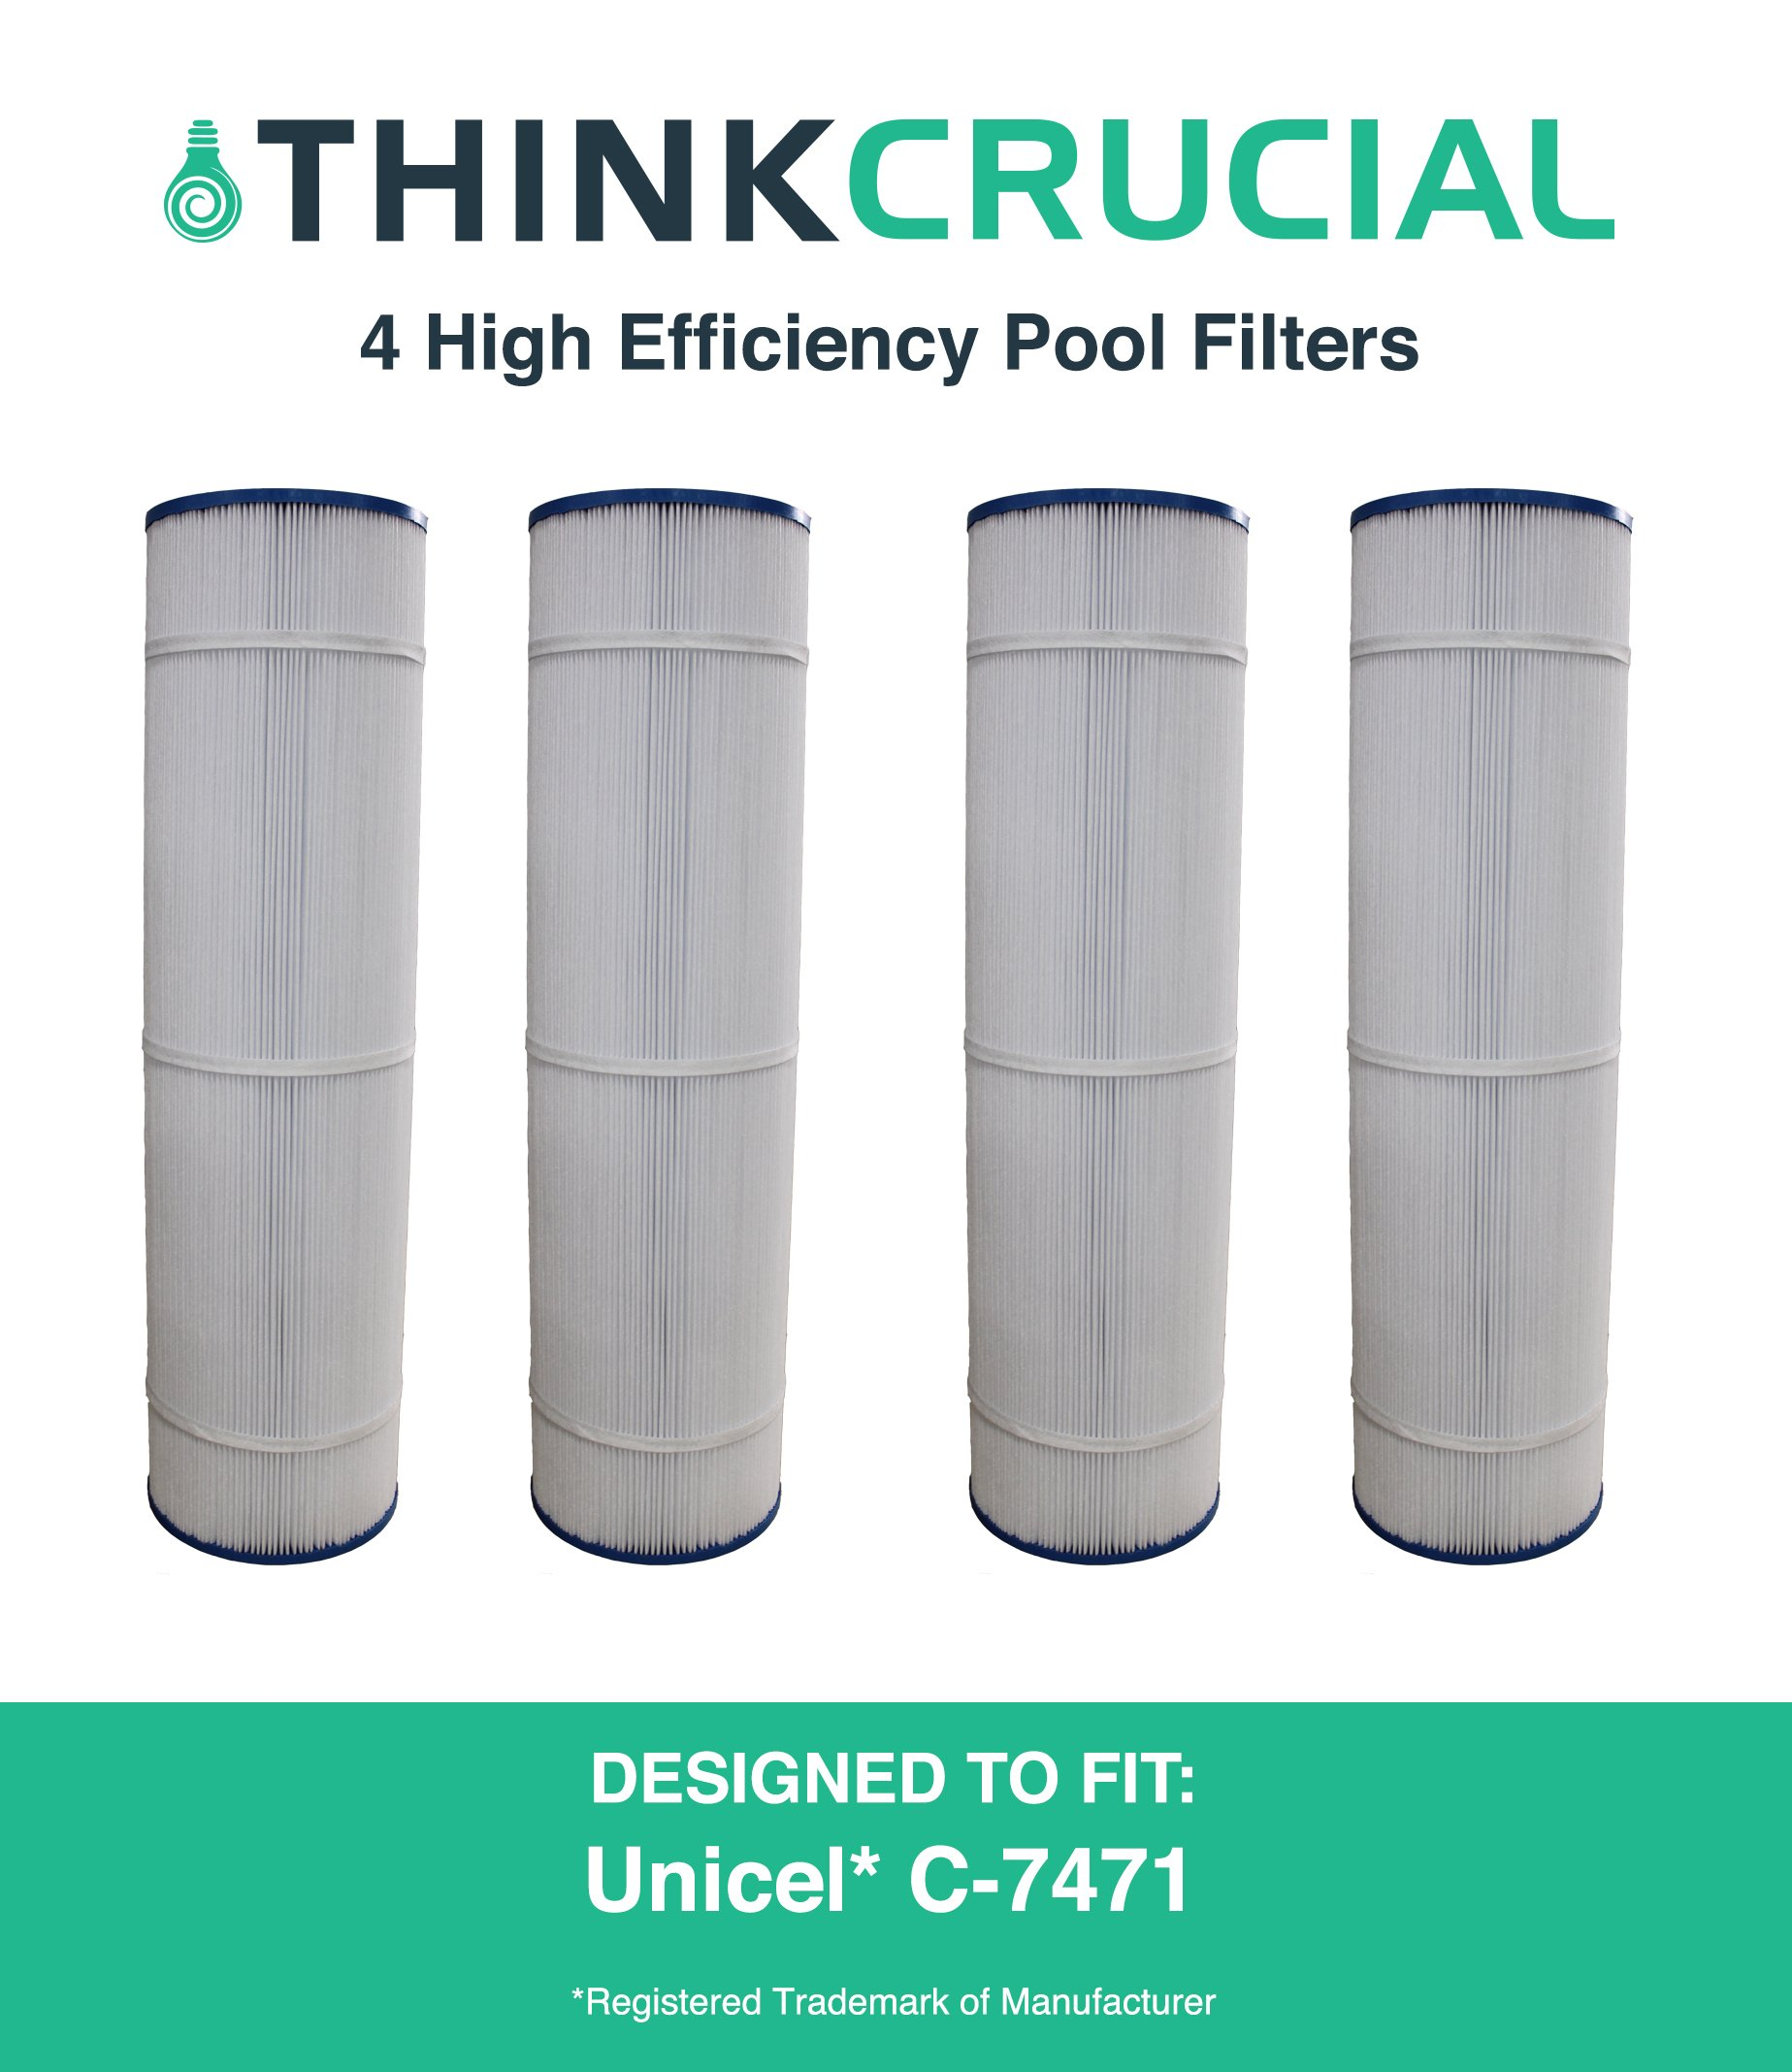 4 Replacements for Unicel Pool Filter Fits C-7471, Pleatco PCC105 & Filbur FC-1977, by Think Crucial